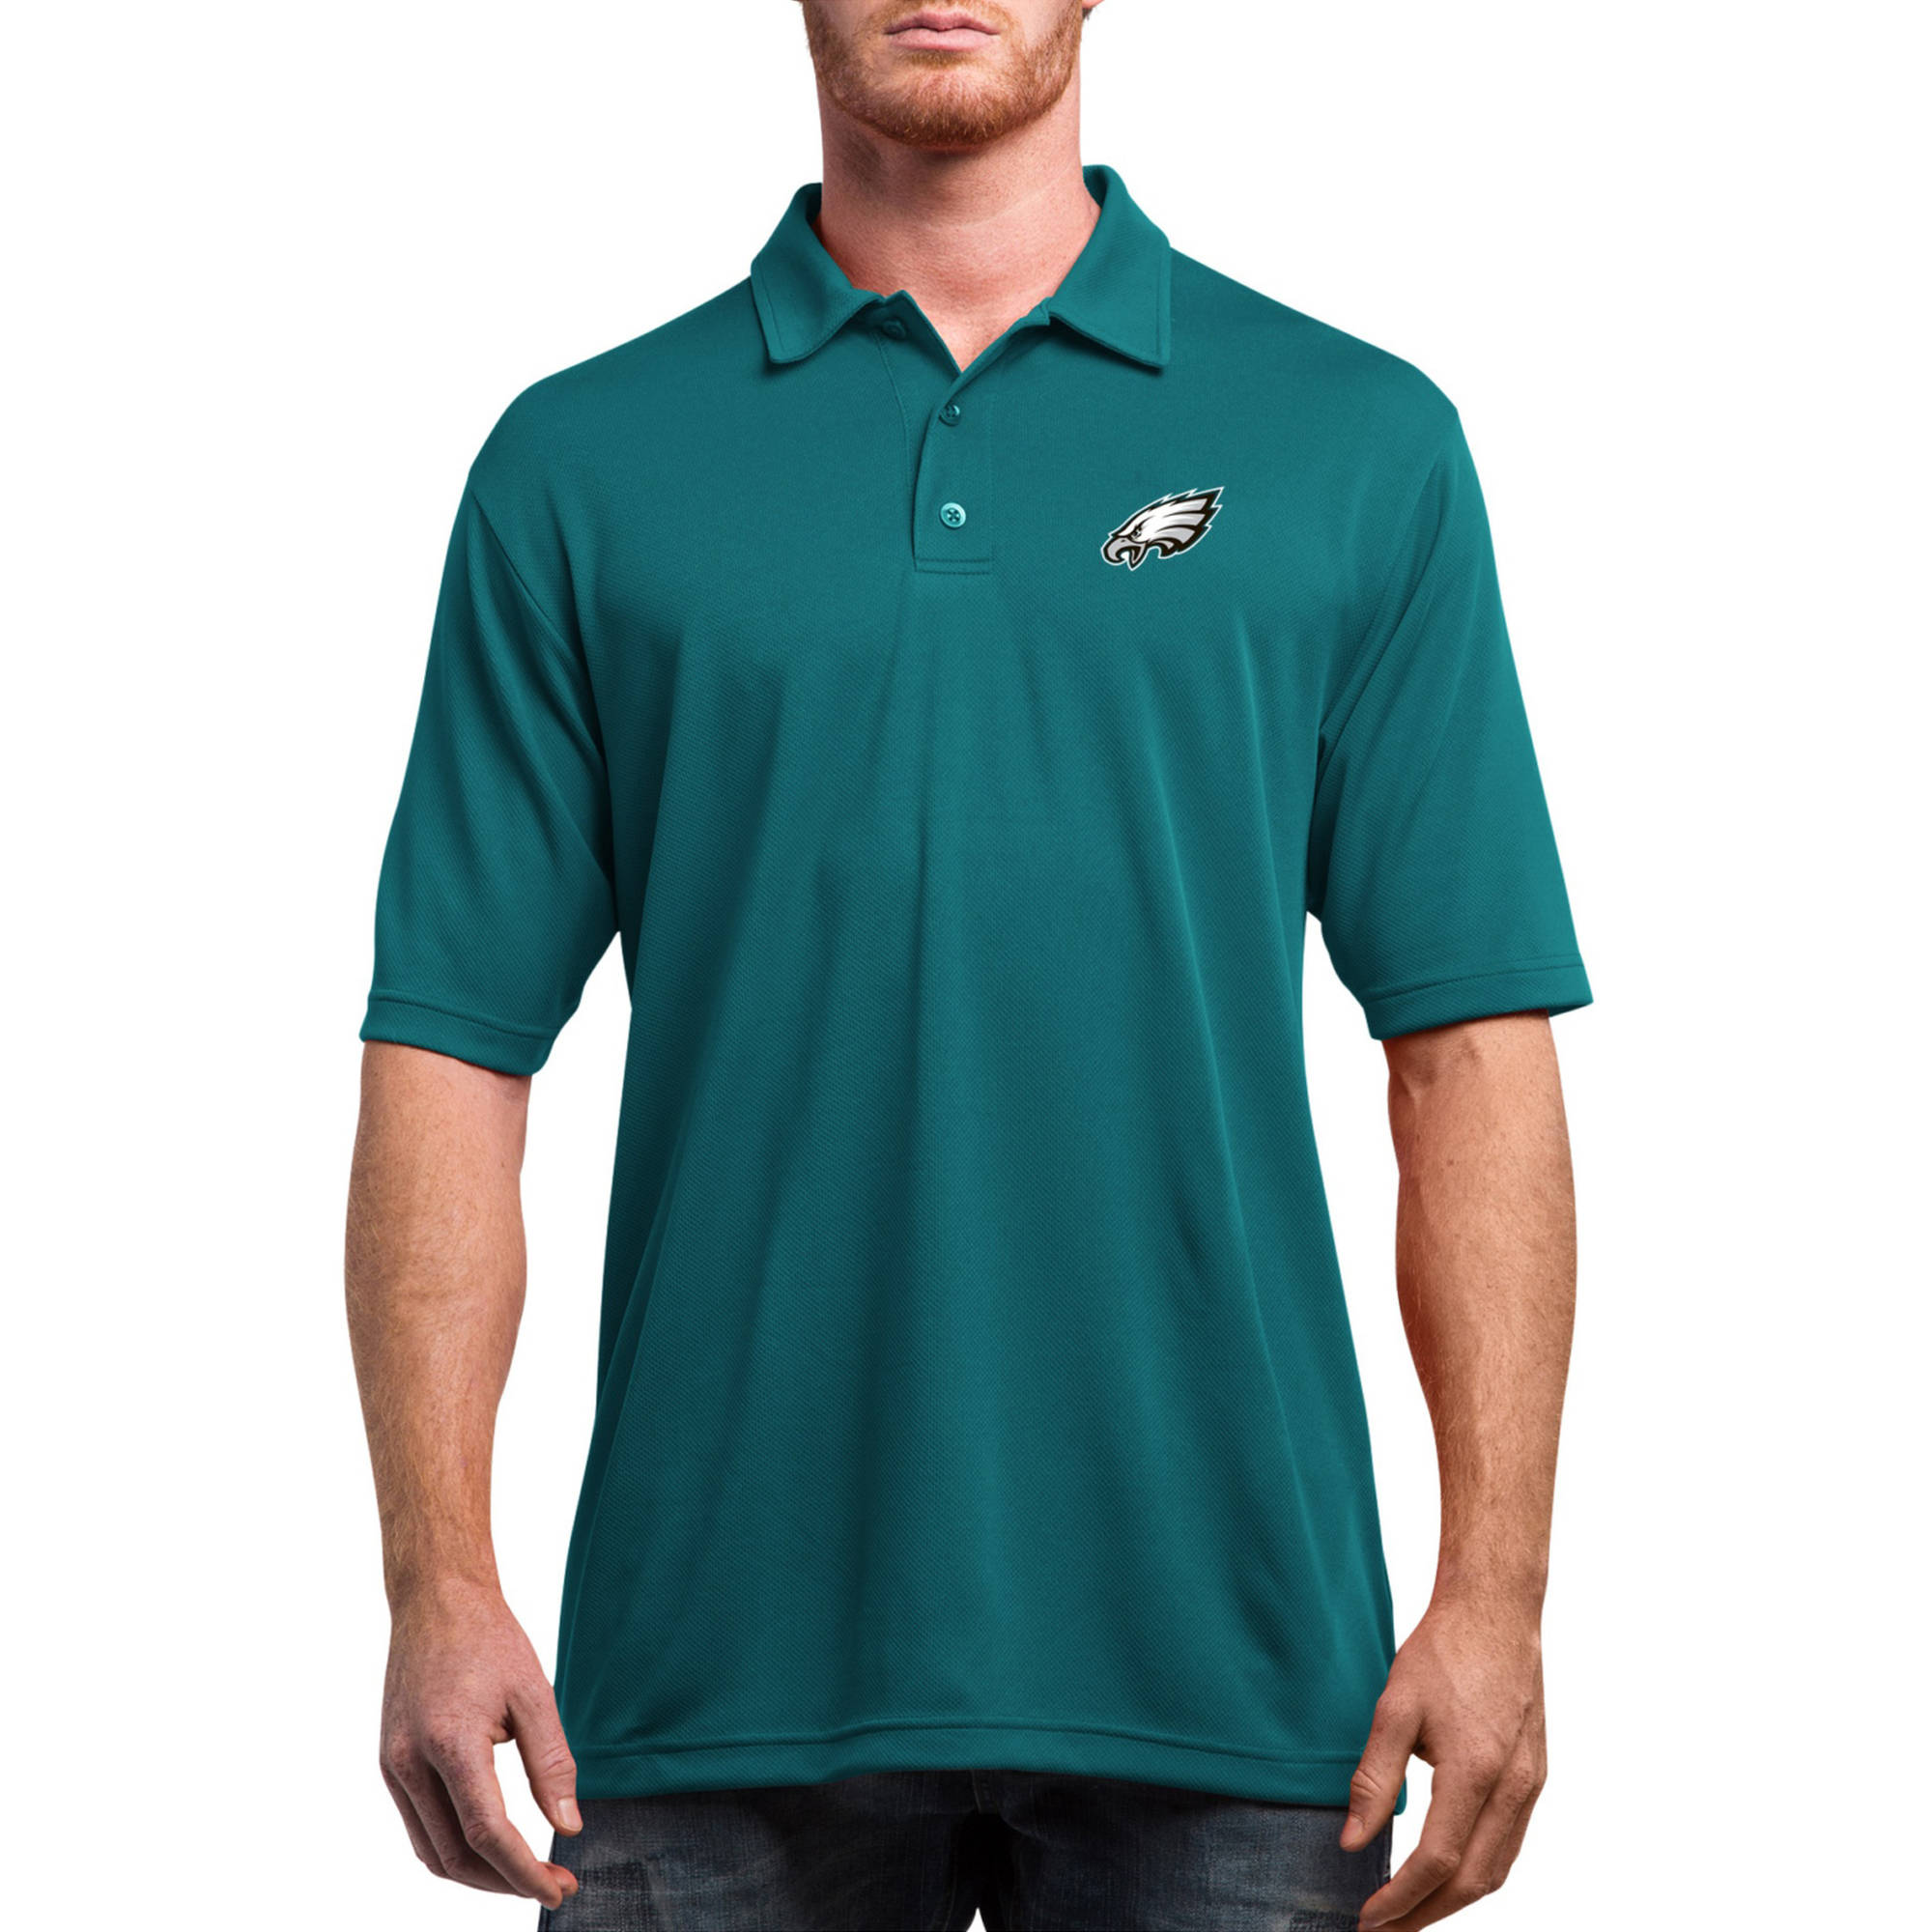 NFL Philadelphia Eagles On to the Win Men's Big and Tall Short Sleeve Polo